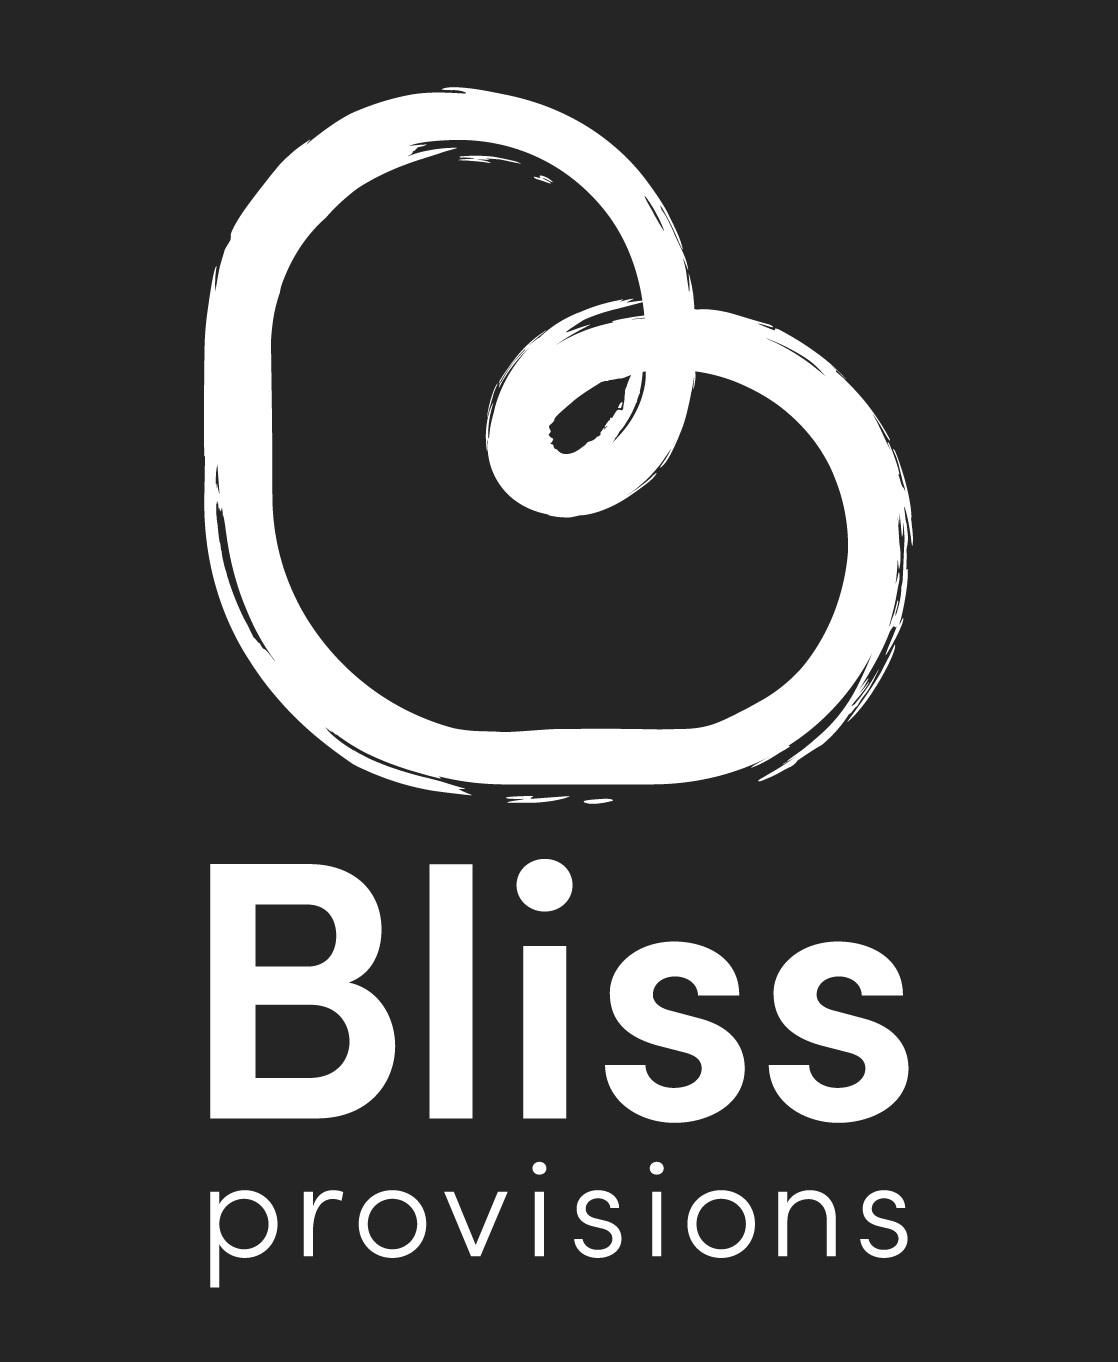 BlissLogoFinal_white-copy